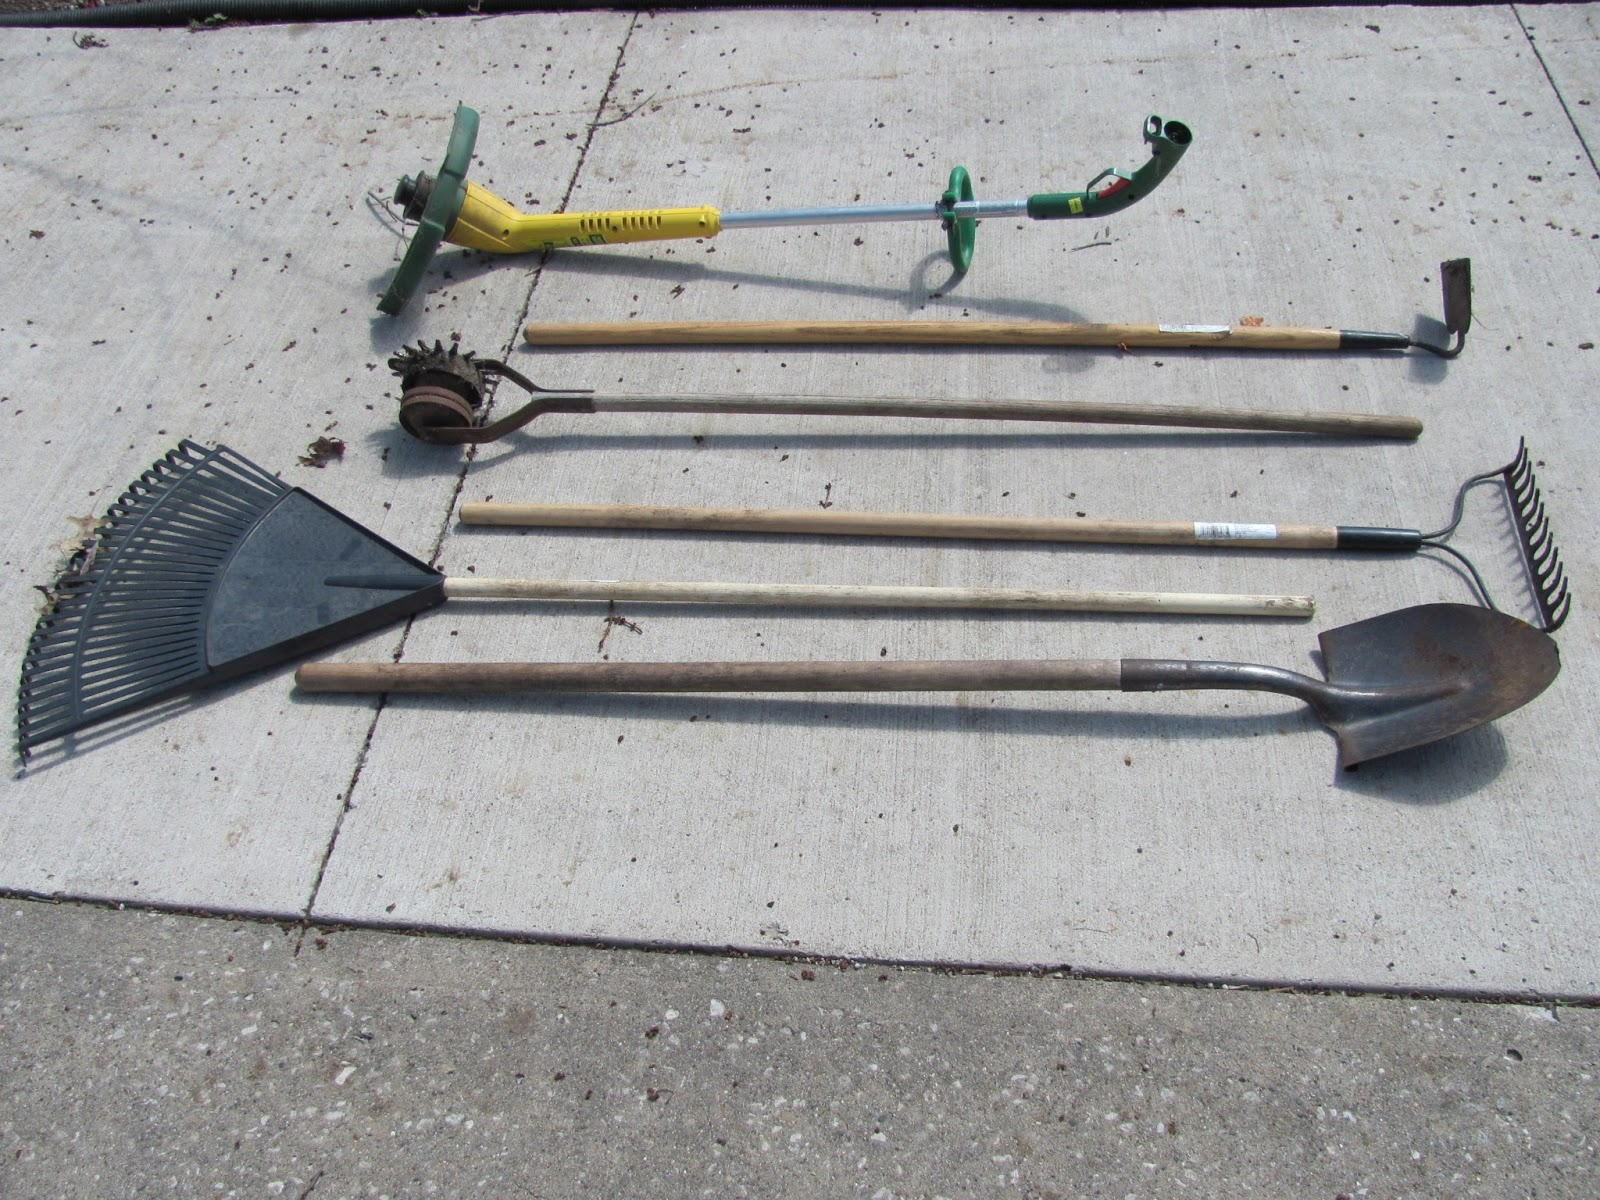 Shovel, leaf rake, garden rake, edger, hoe, and trimmer on display before being sold on Craigslist